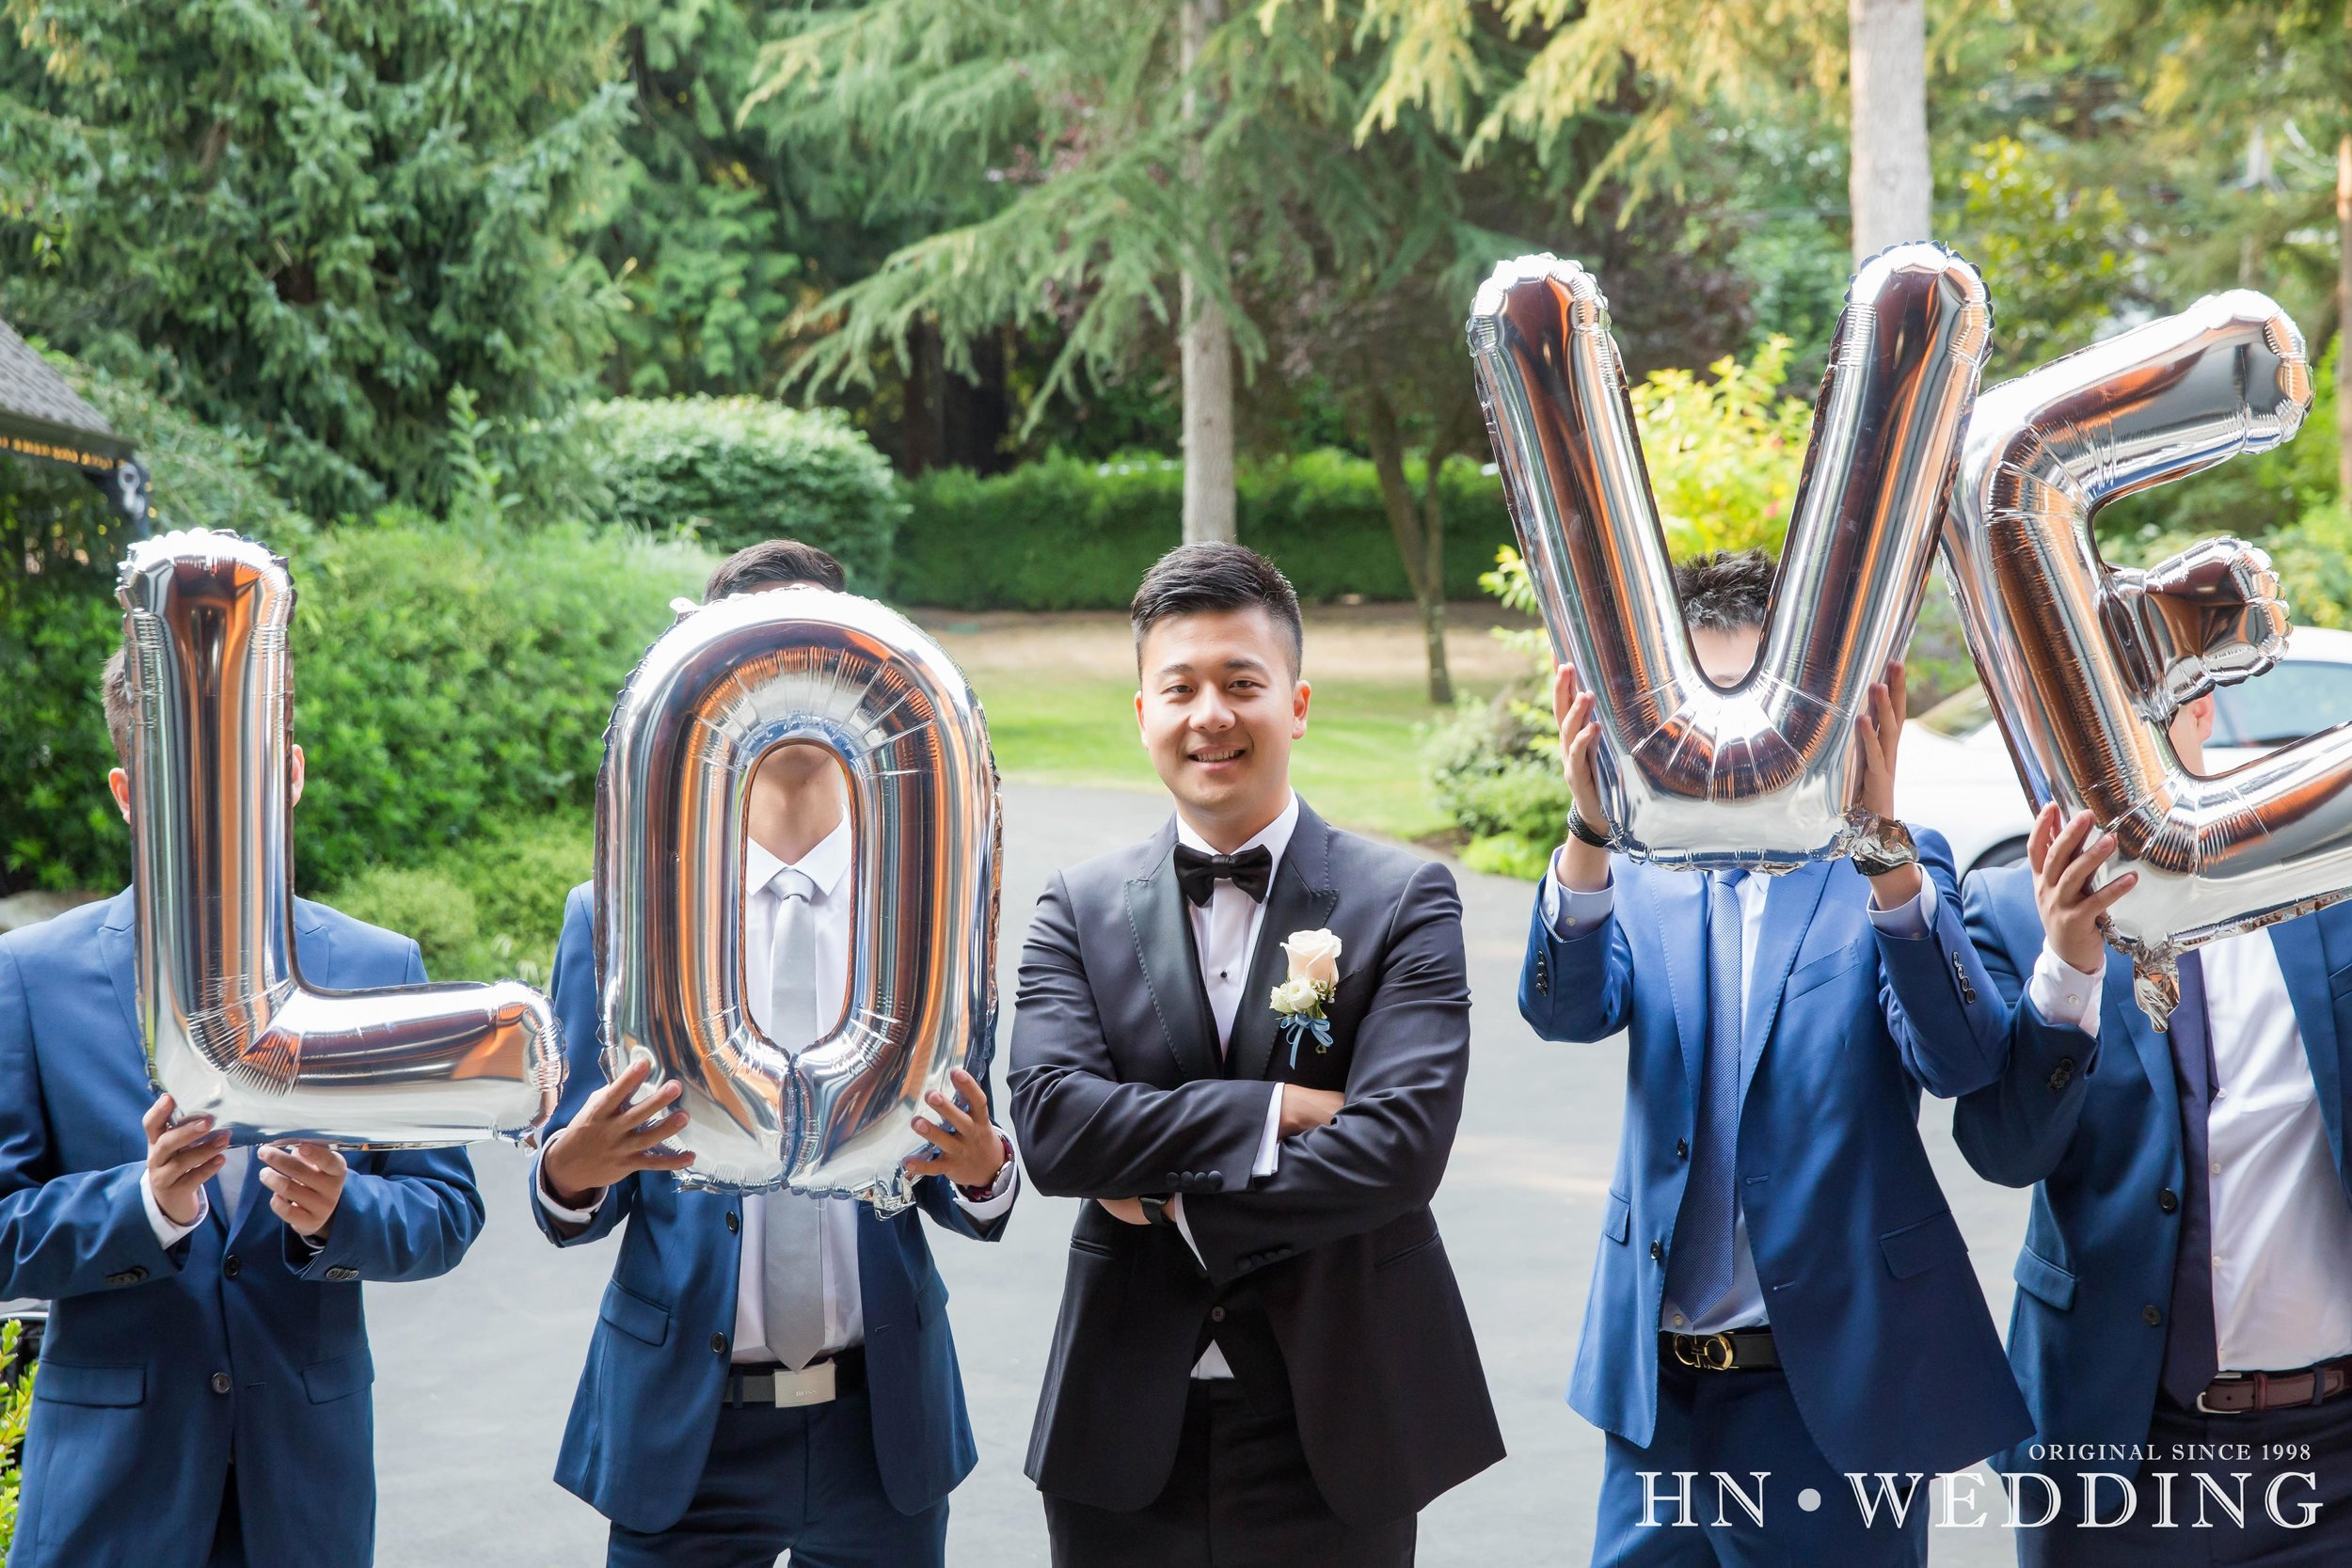 HNwedding20170811weddingday-14.jpg